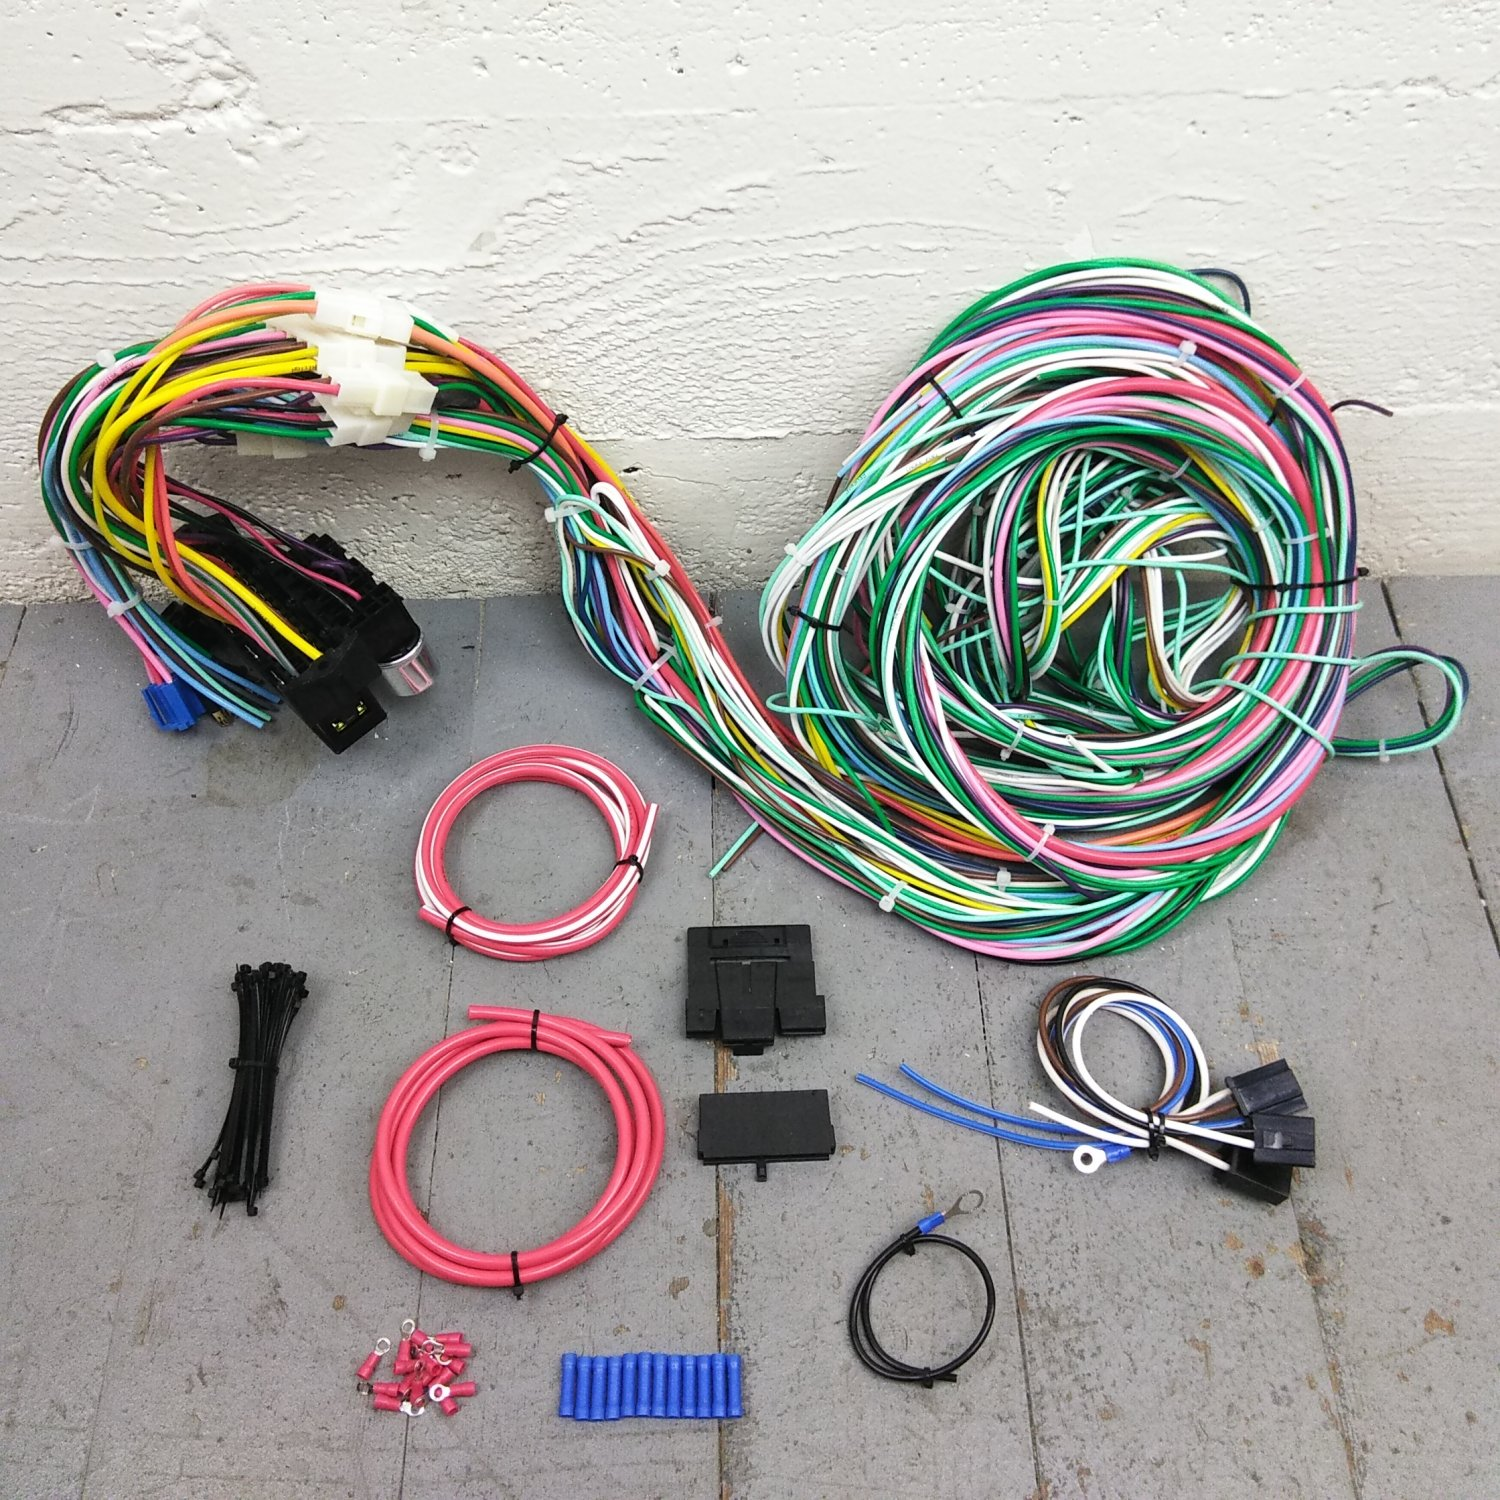 1950 1954 Chevy Car Wire Harness Upgrade Kit Fits Painless Compact Wiring Fuse Block Bar Product Description C